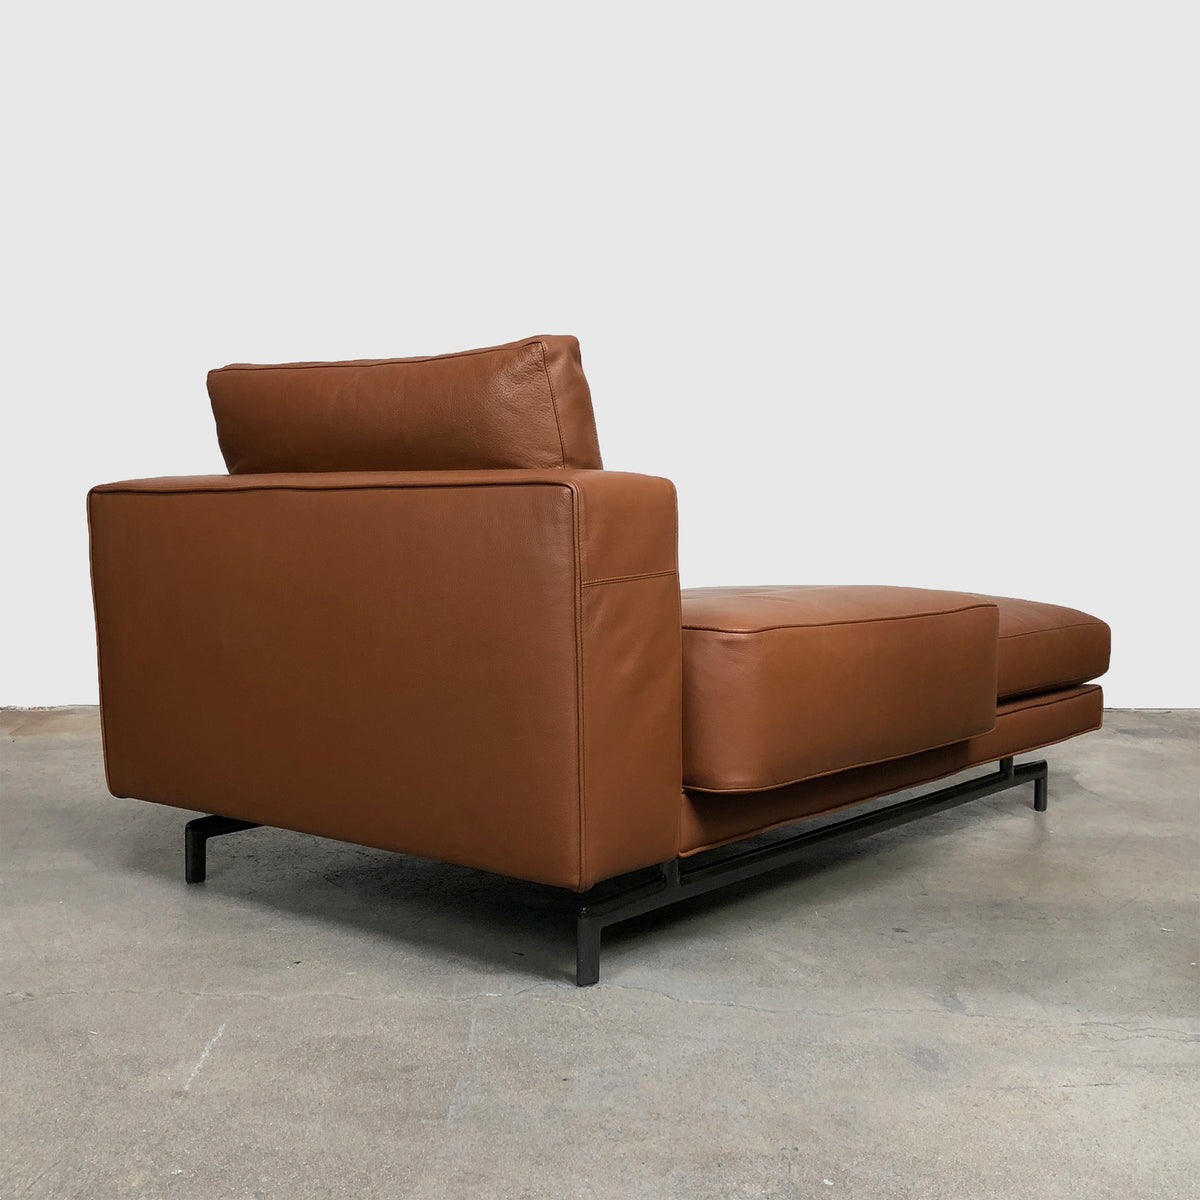 Minotti 'Sherman' Brown and Taupe Leather Chaise Lounge by Rodolfo Dordoni